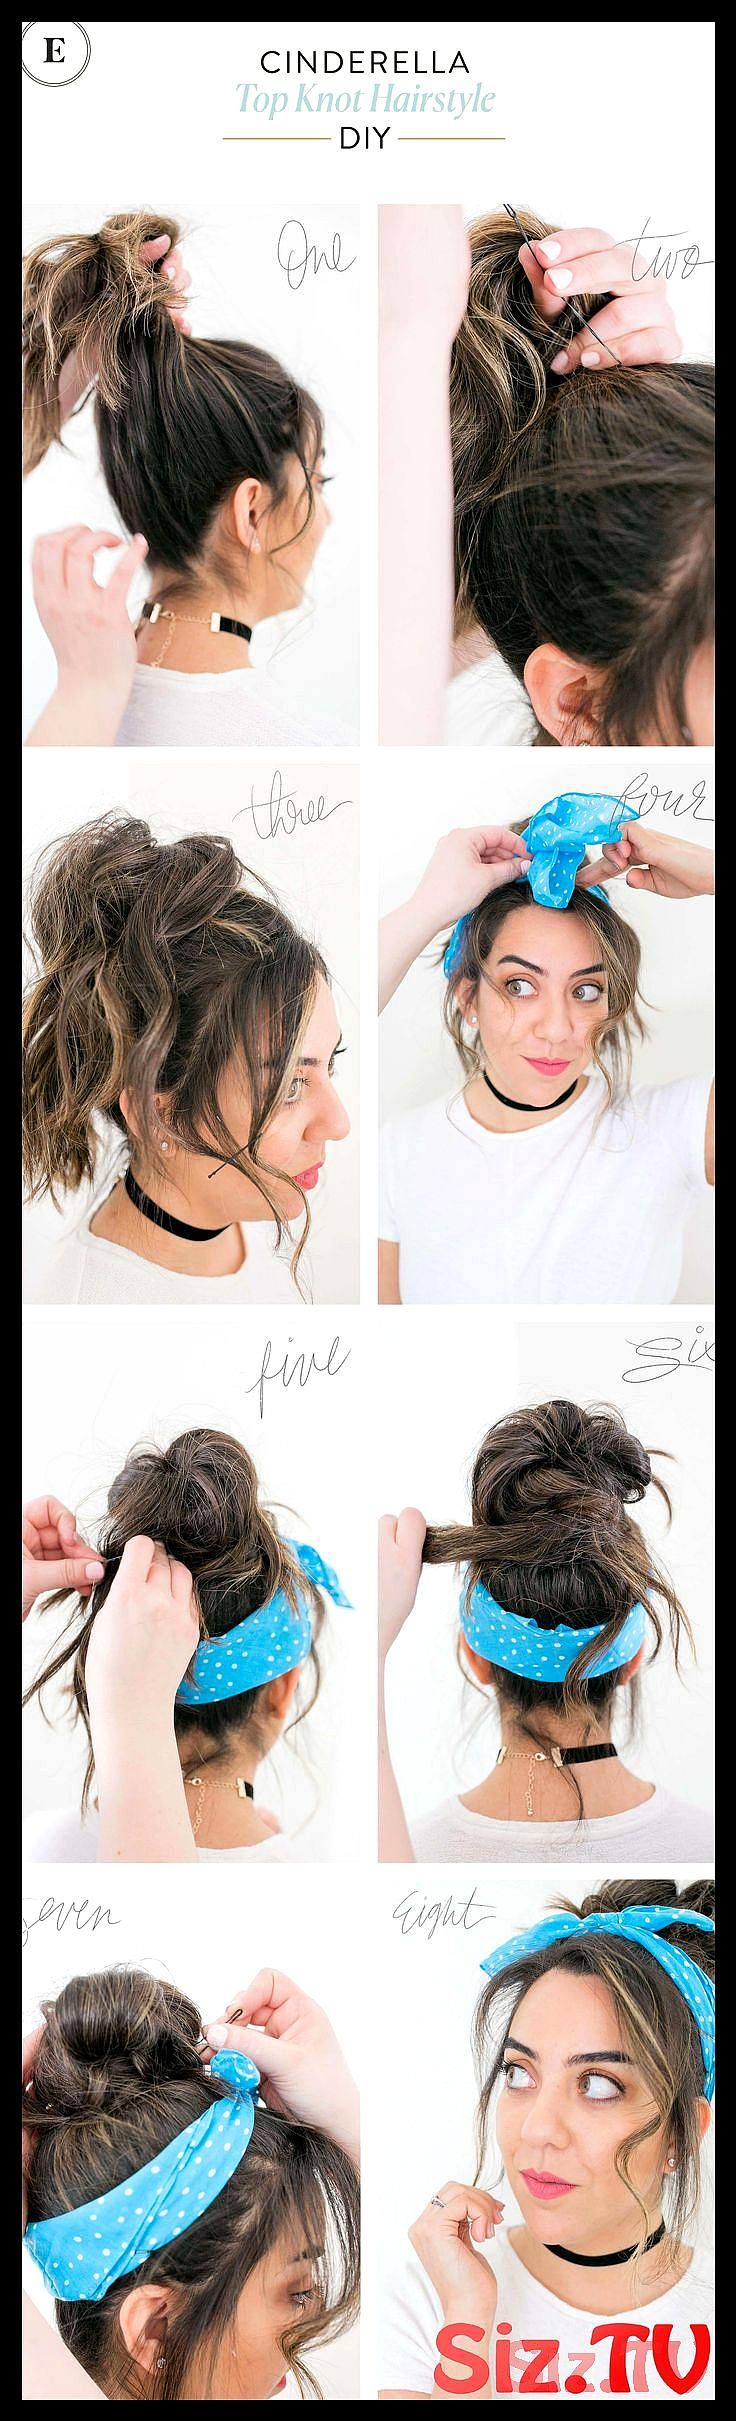 Cinderella Top Knot Hairstyle Diy Cinderella Top Knot Hairstyle Diy A Quick And Simple Cinderella Top Knot Tutorial Inspired By One Of The Original DiCinderella Top Knot Hairstyle Diy Cinderella Top Knot Hairstyle Diy A Quick And Simple Cinderella Top Knot Tutorial Inspired By One Of The Original DiMessy Bun Save Images Messy Bun Cinderella Top Knot Hairstyle Diy Cinderella Top Knot Hairstyle Diy A Quic #cinderella #hairstyle #inspired #messybuntopknottutorials #original #quick #simple #tutorial #topknotbunhowto